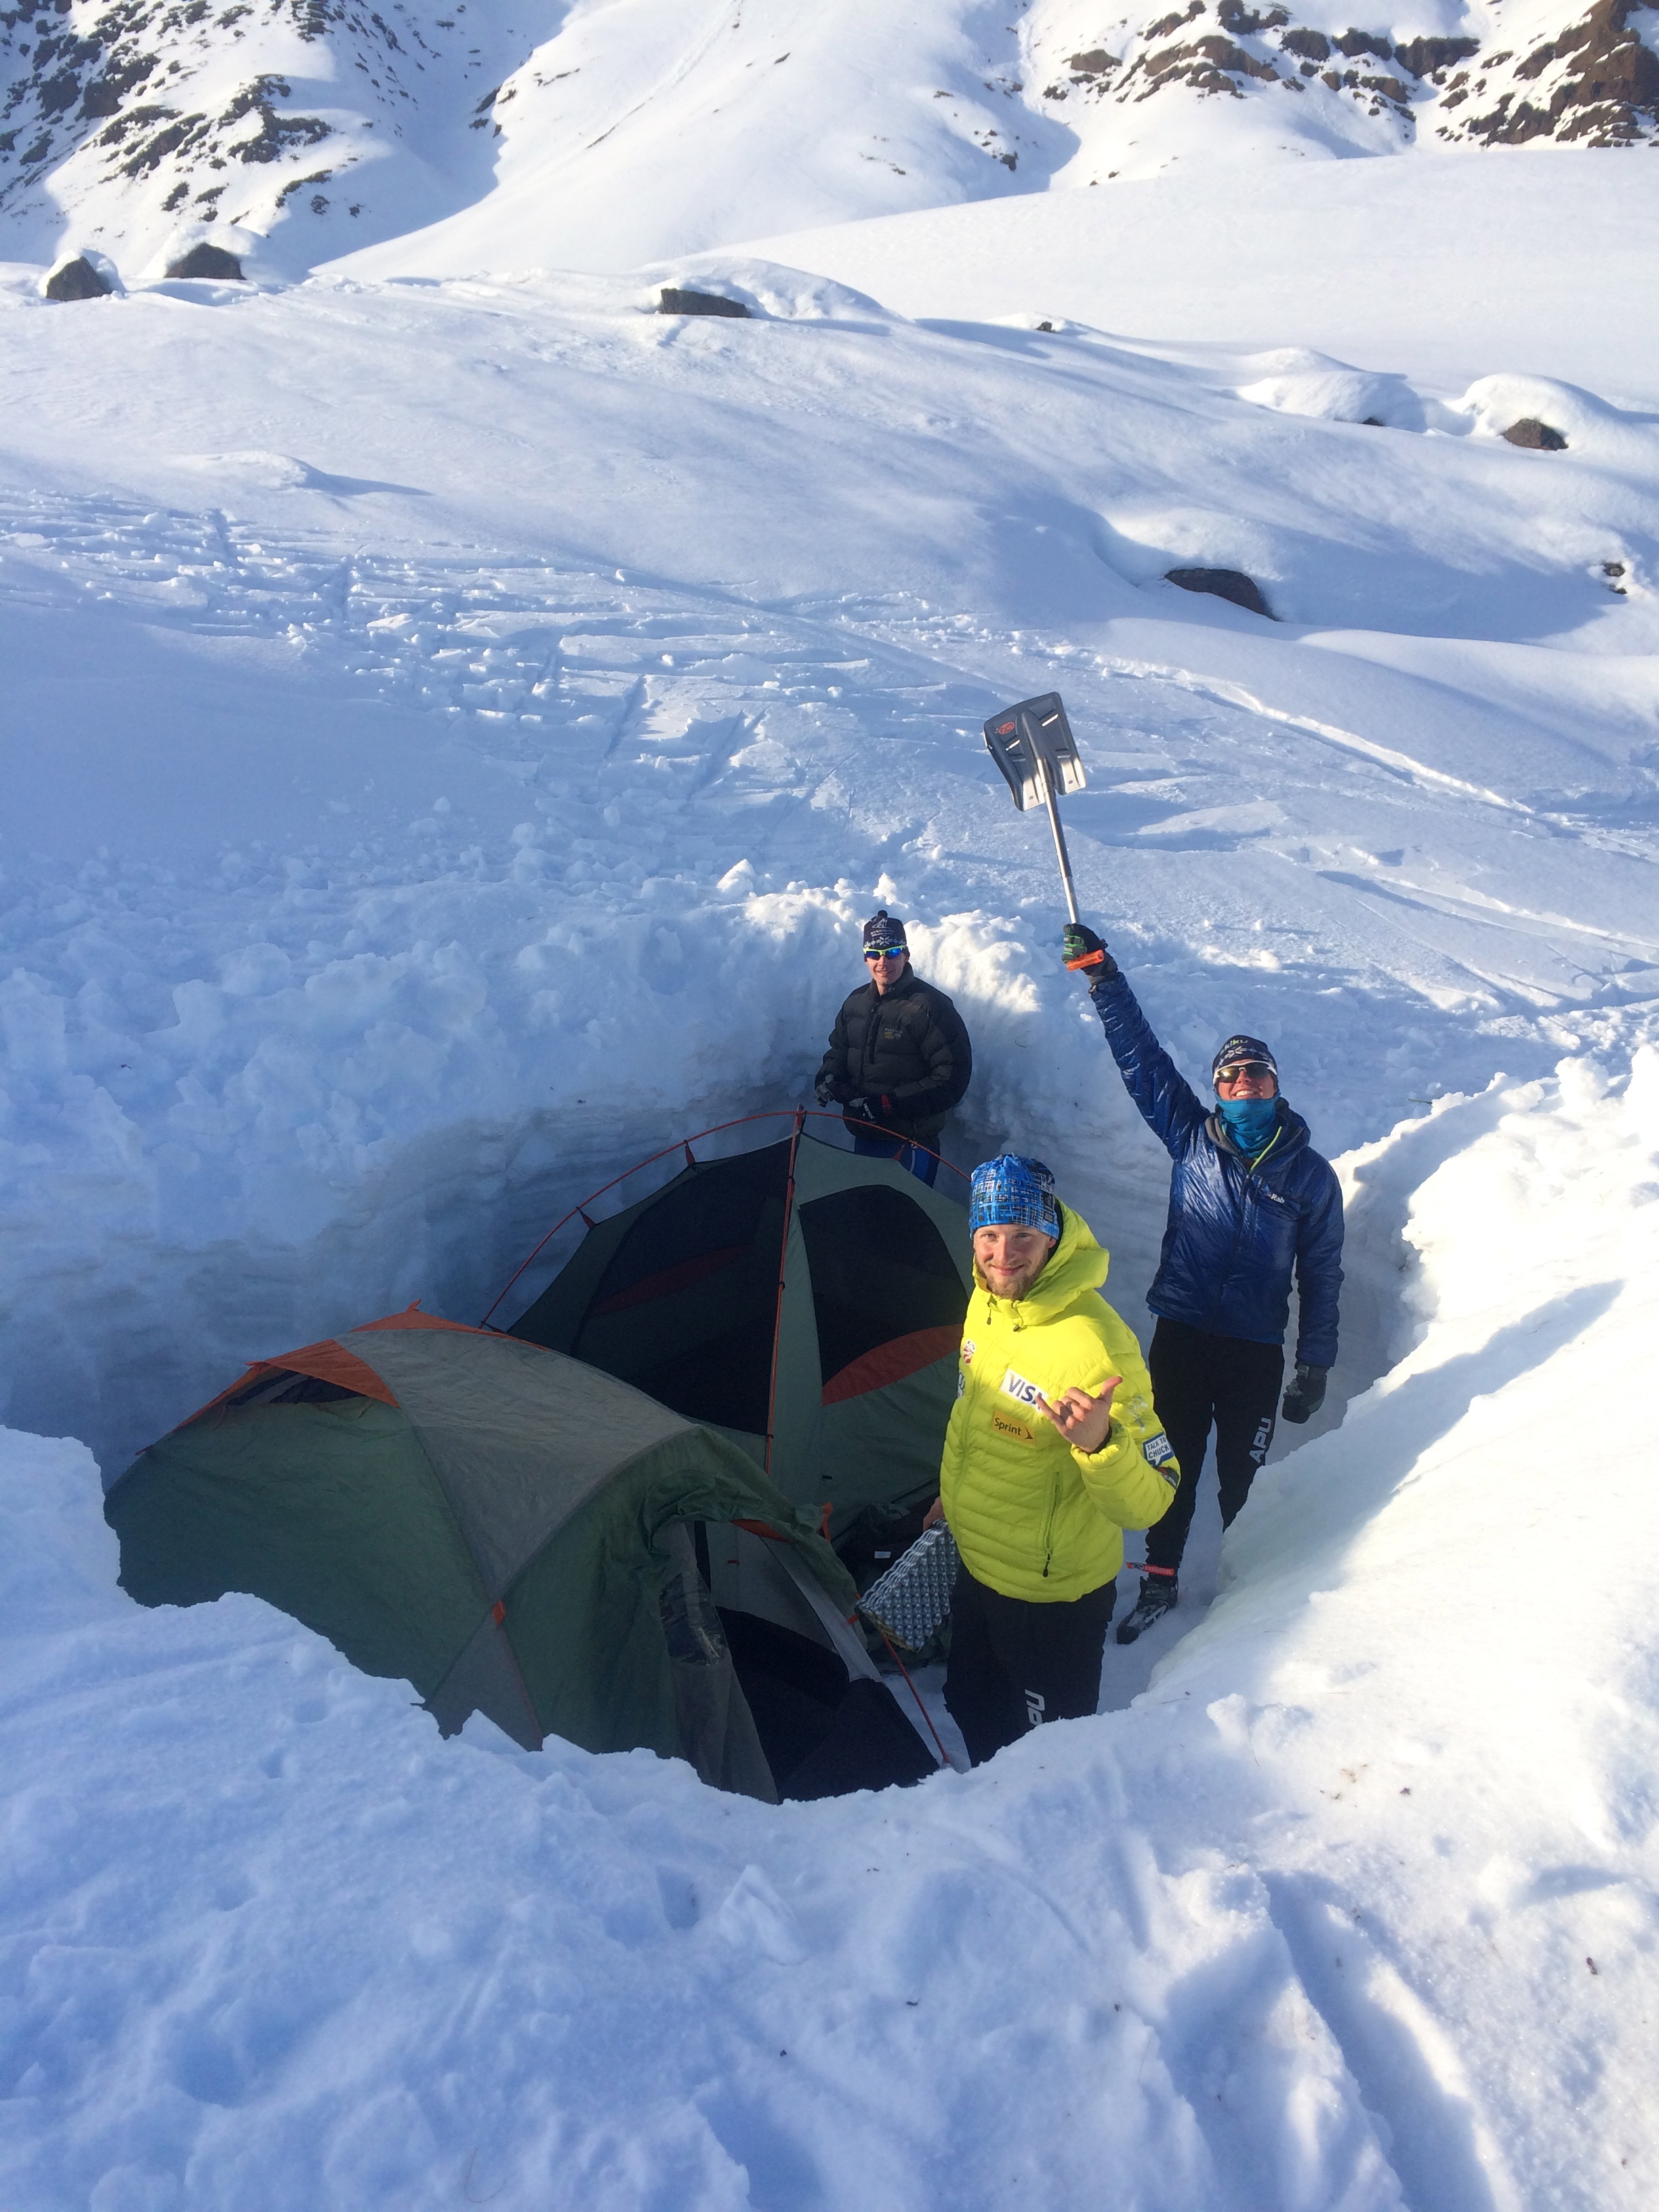 After digging through 3ft of sugar the tents have a solid foundation. Sleeping bag time!